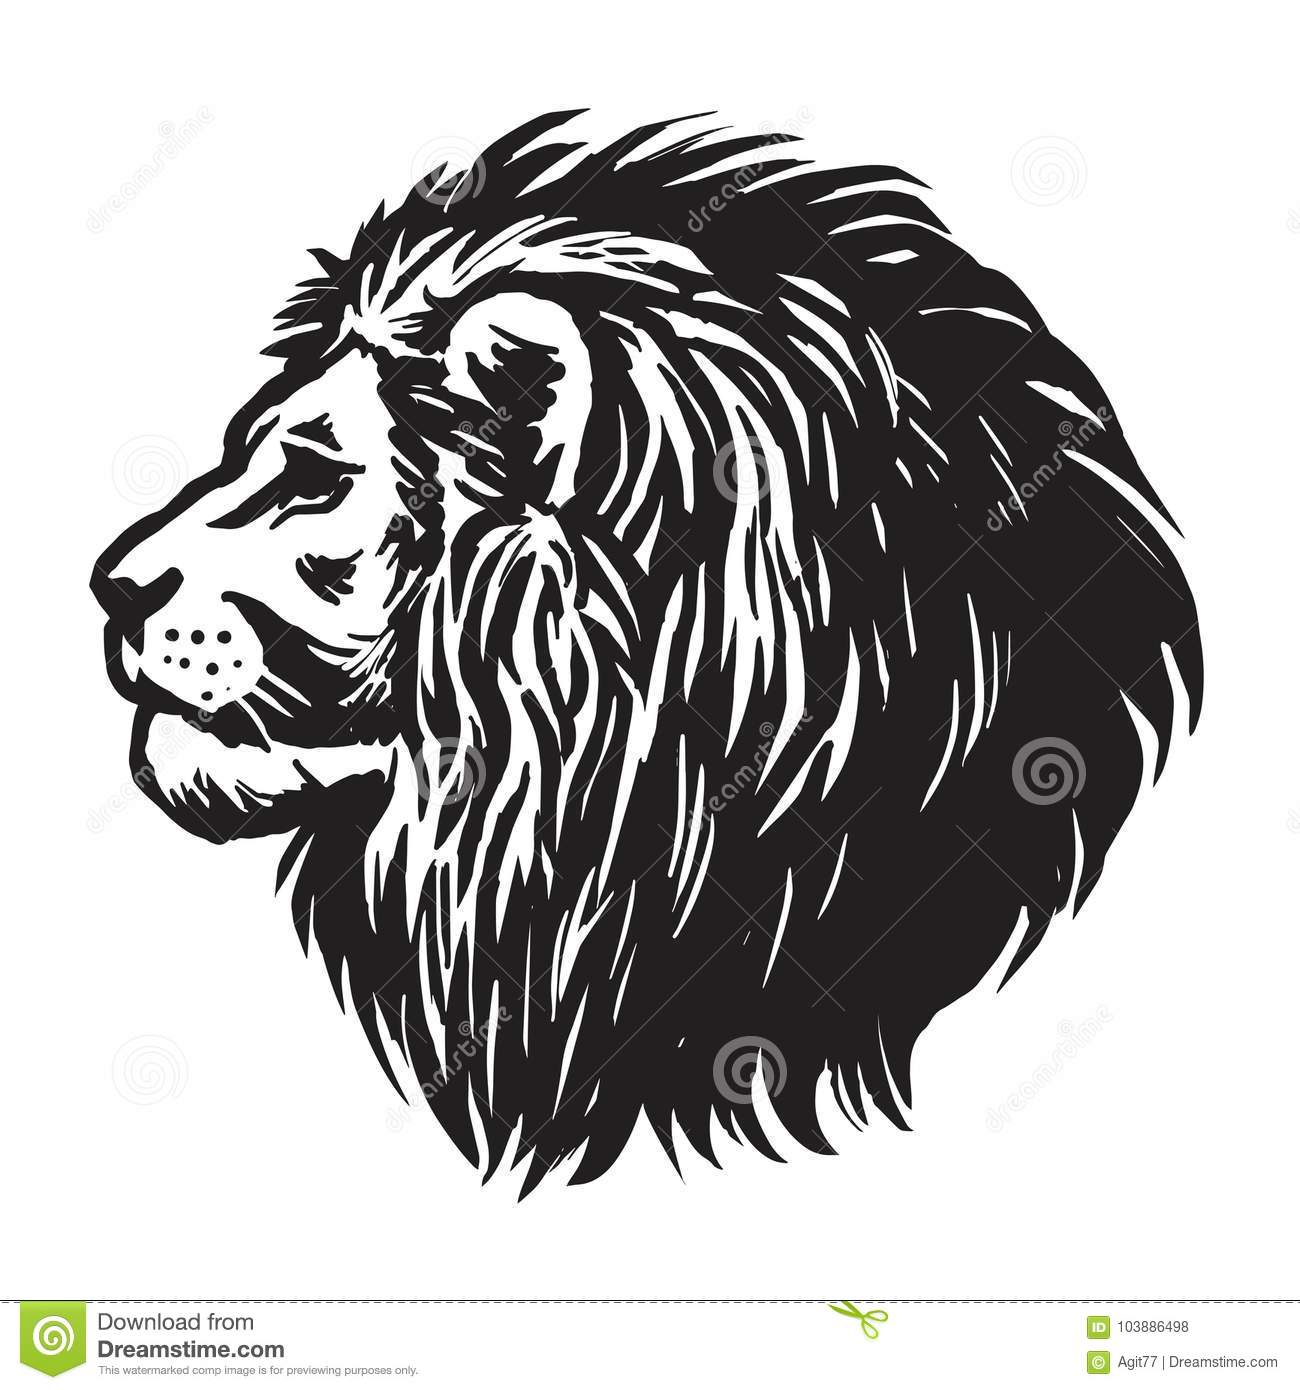 Lion Head Drawing Stock Illustrations 6 032 Lion Head Drawing Stock Illustrations Vectors Clipart Dreamstime Choose from over a million free vectors, clipart graphics, vector art images, design templates, and illustrations created by artists worldwide! https www dreamstime com lion head realistic hand drawn drawing vector illustration ink line image103886498